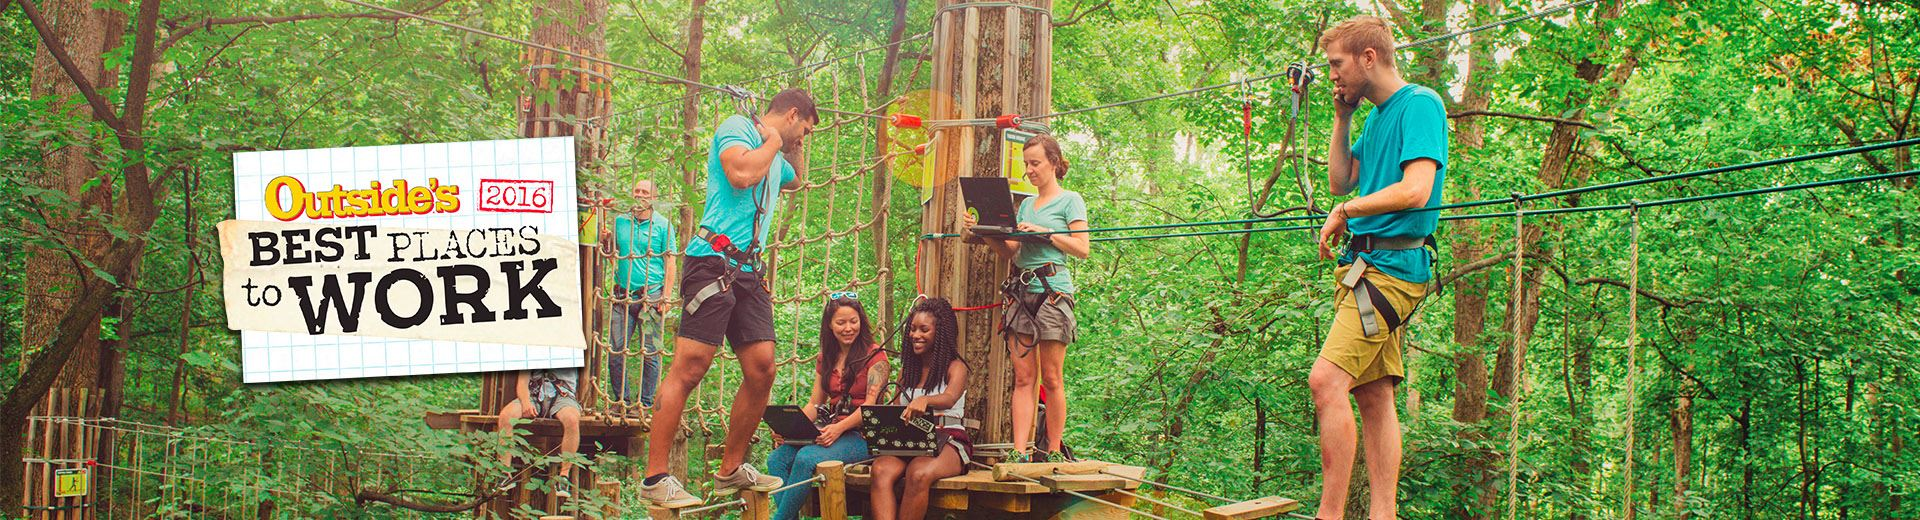 Go Ape employees performing job functions in the trees on a Go Ape Treetop Adventure course with obstacles and ziplines